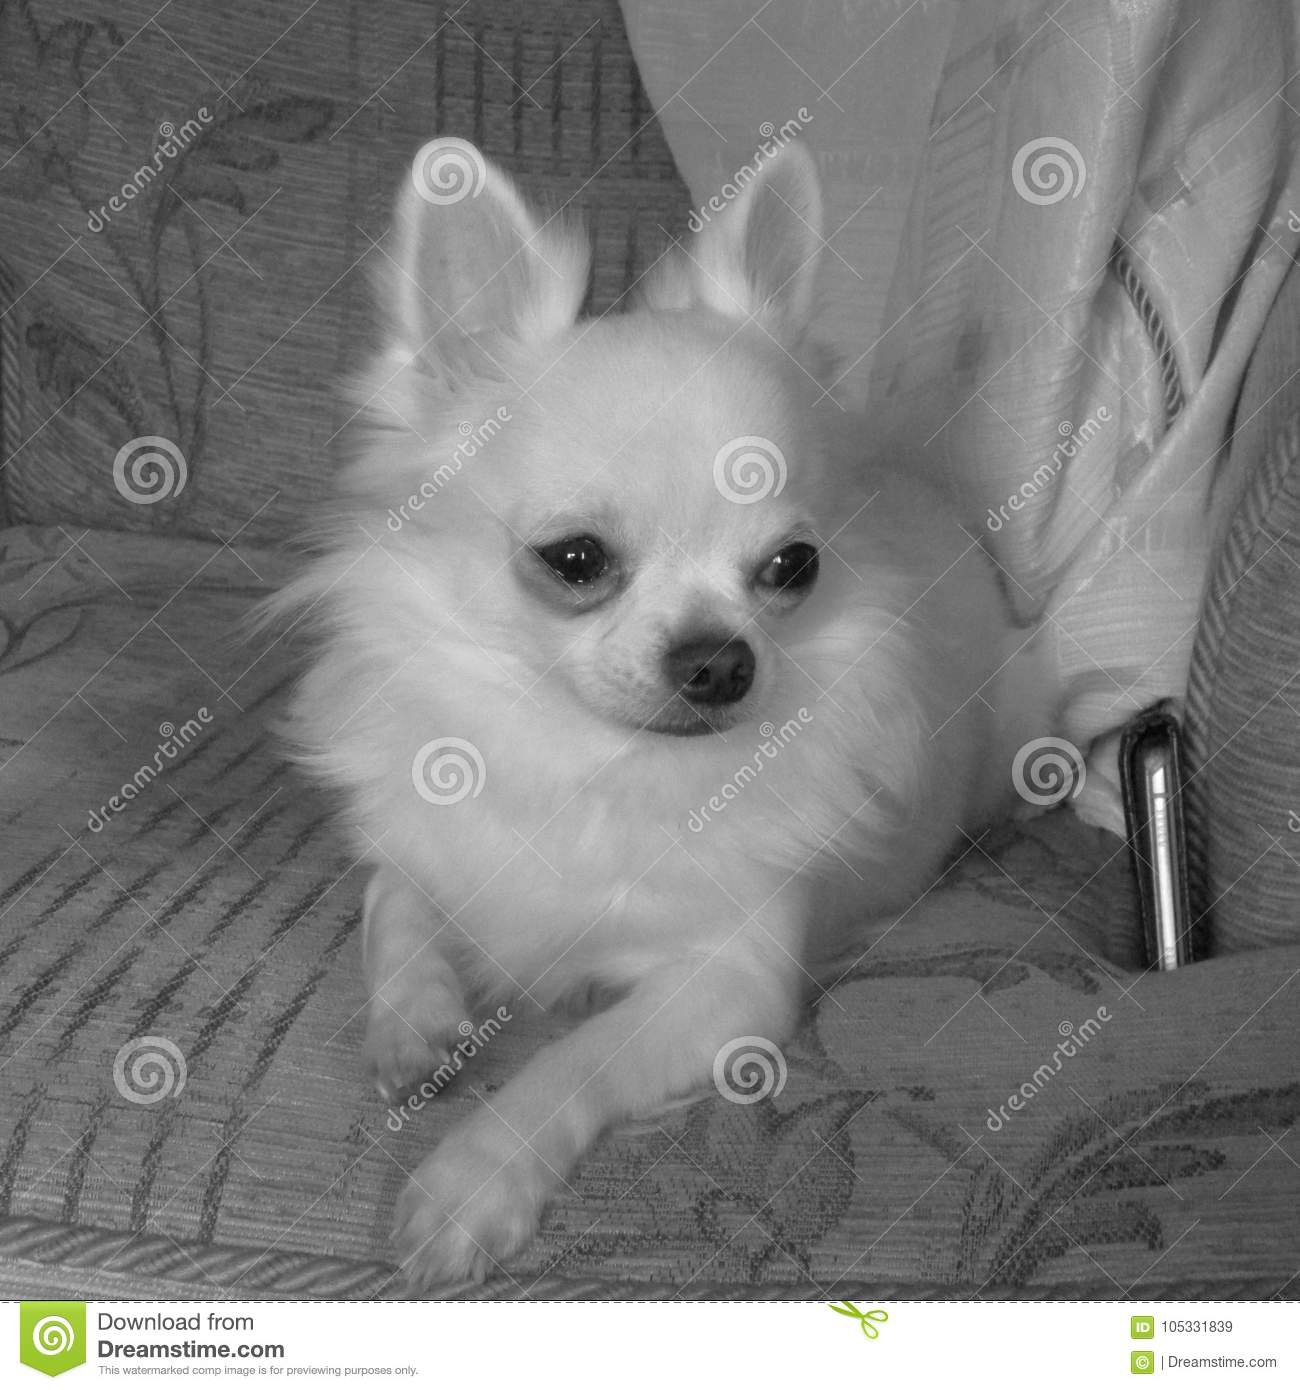 Long Haired White Teacup Chihuahua Stock Image - Image of